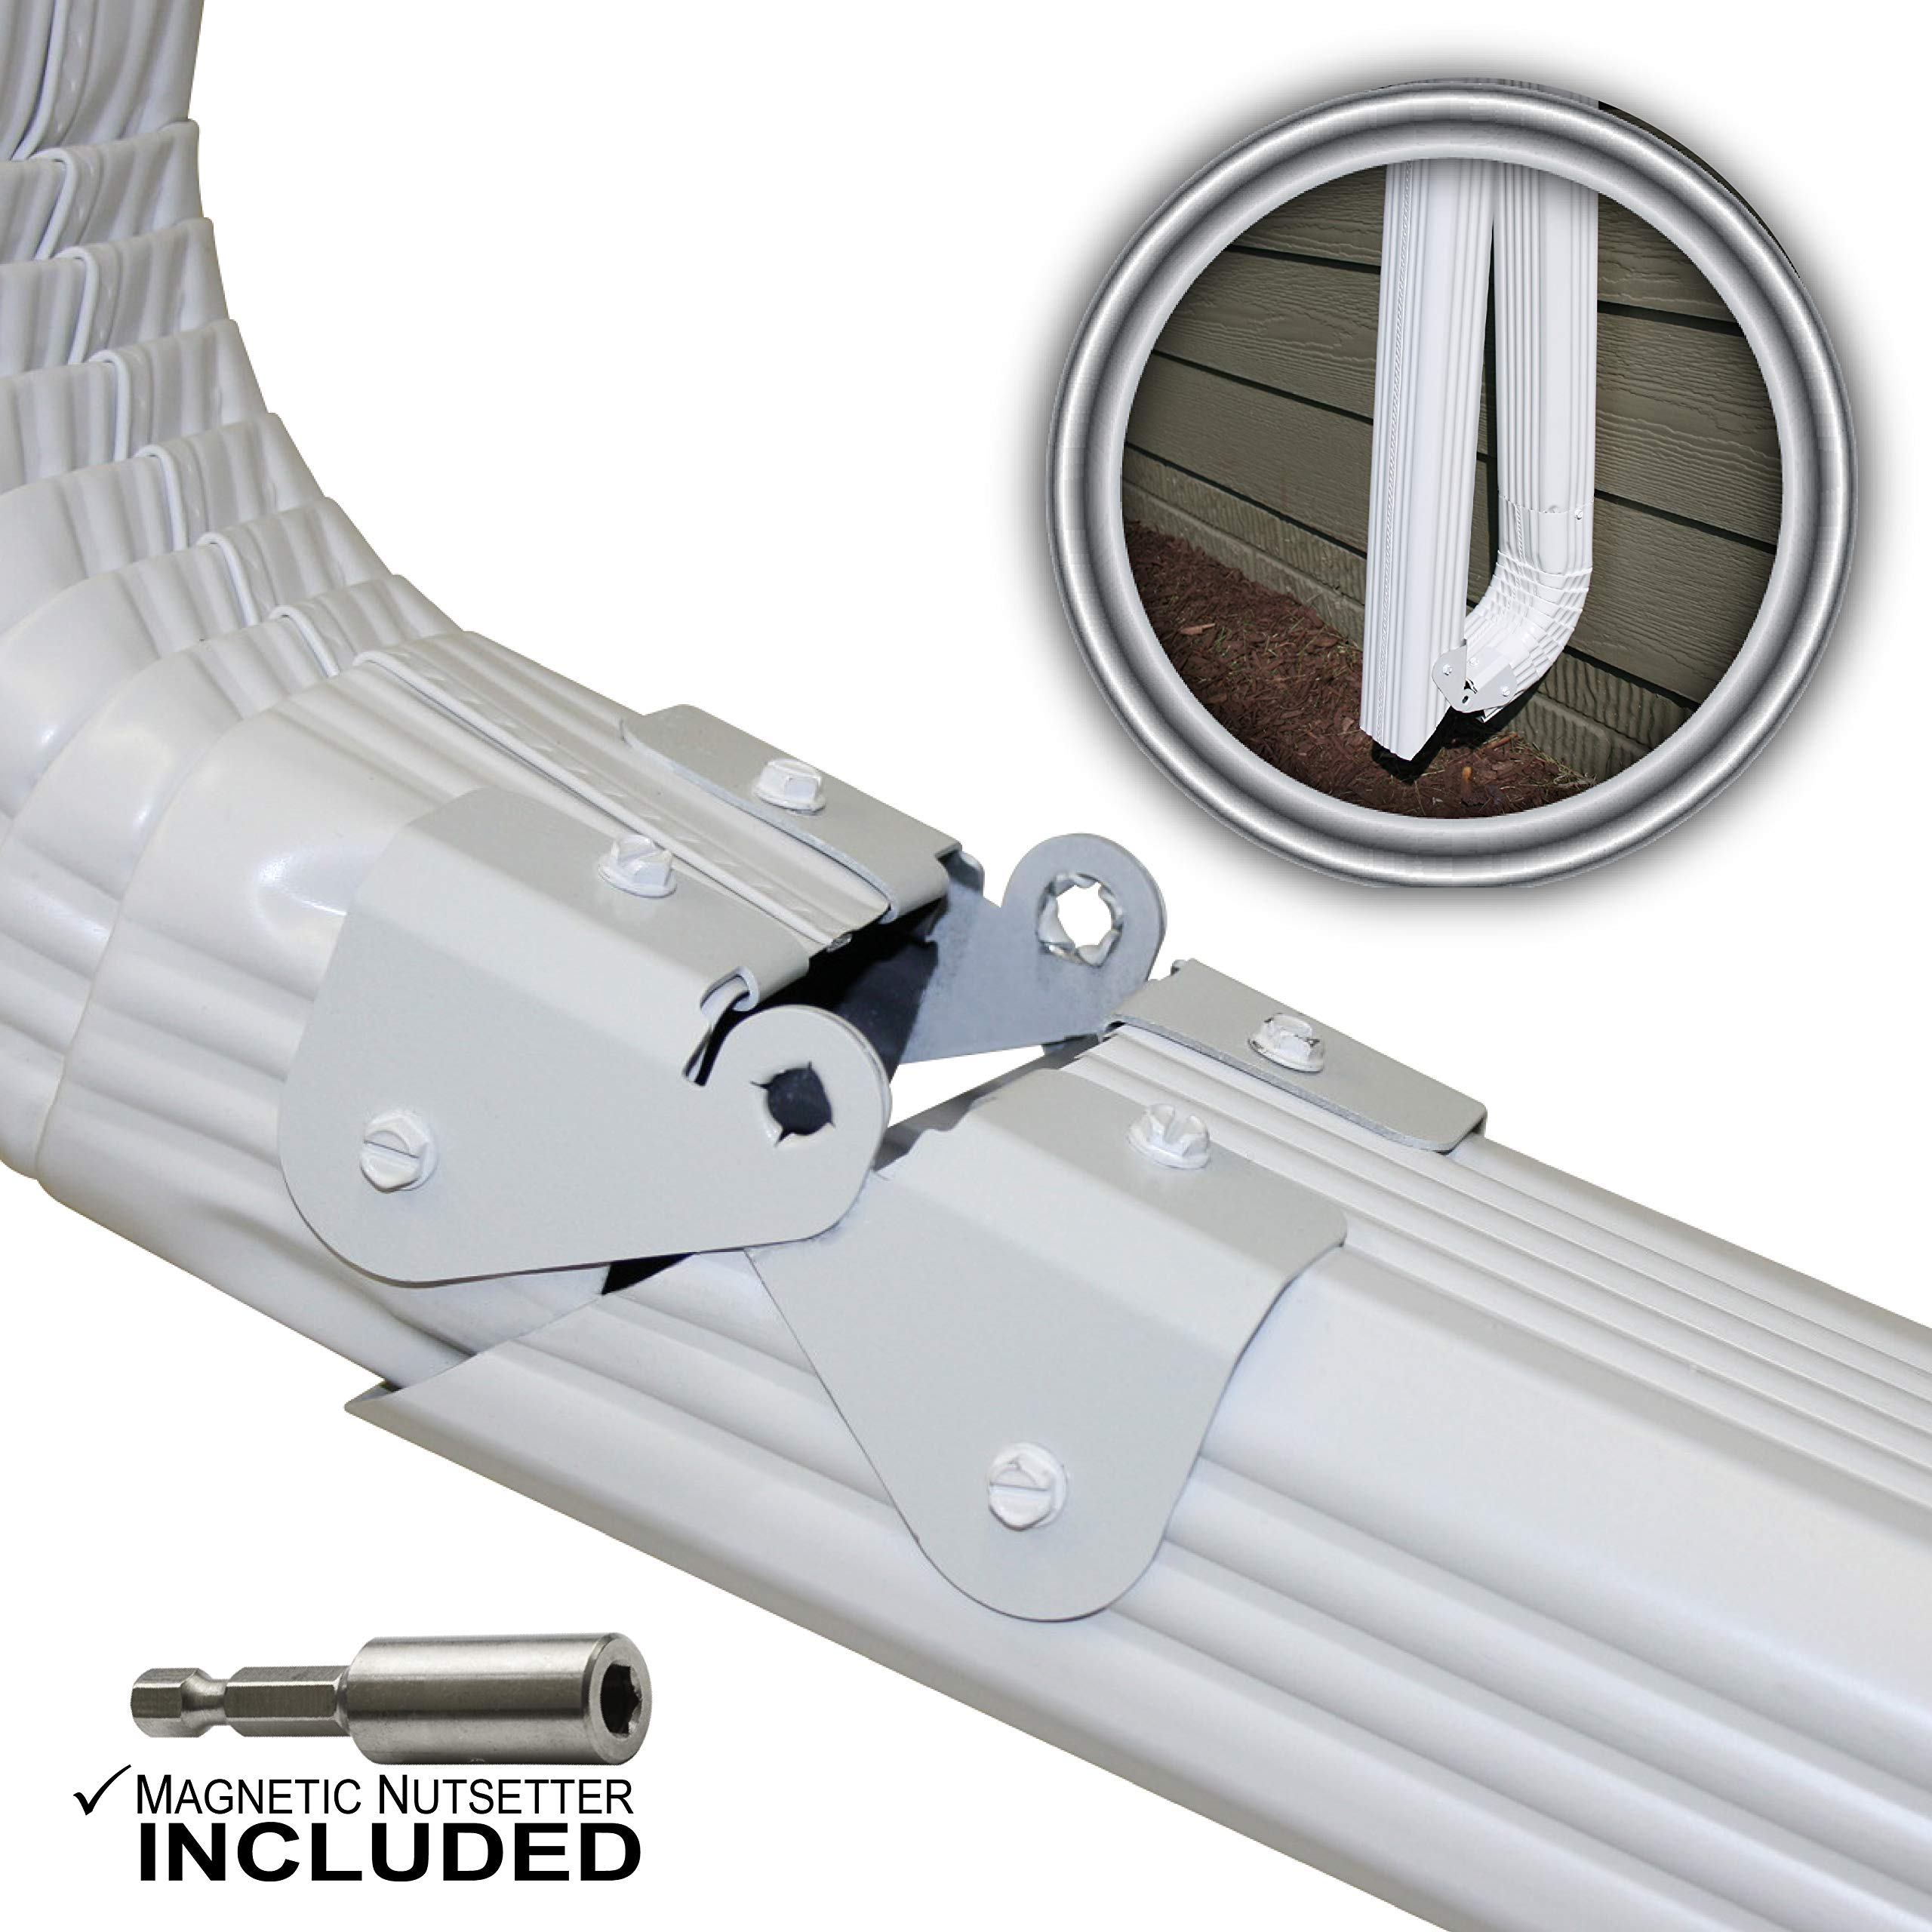 Zip Hinge Plus 4 Pack | 1-6 Packs of Gutter Extension Hinges w/Clasp + Magnetic Nutsetter | DIY Installation on Any Size Rectangle or Square Downspout by Zip Hinge